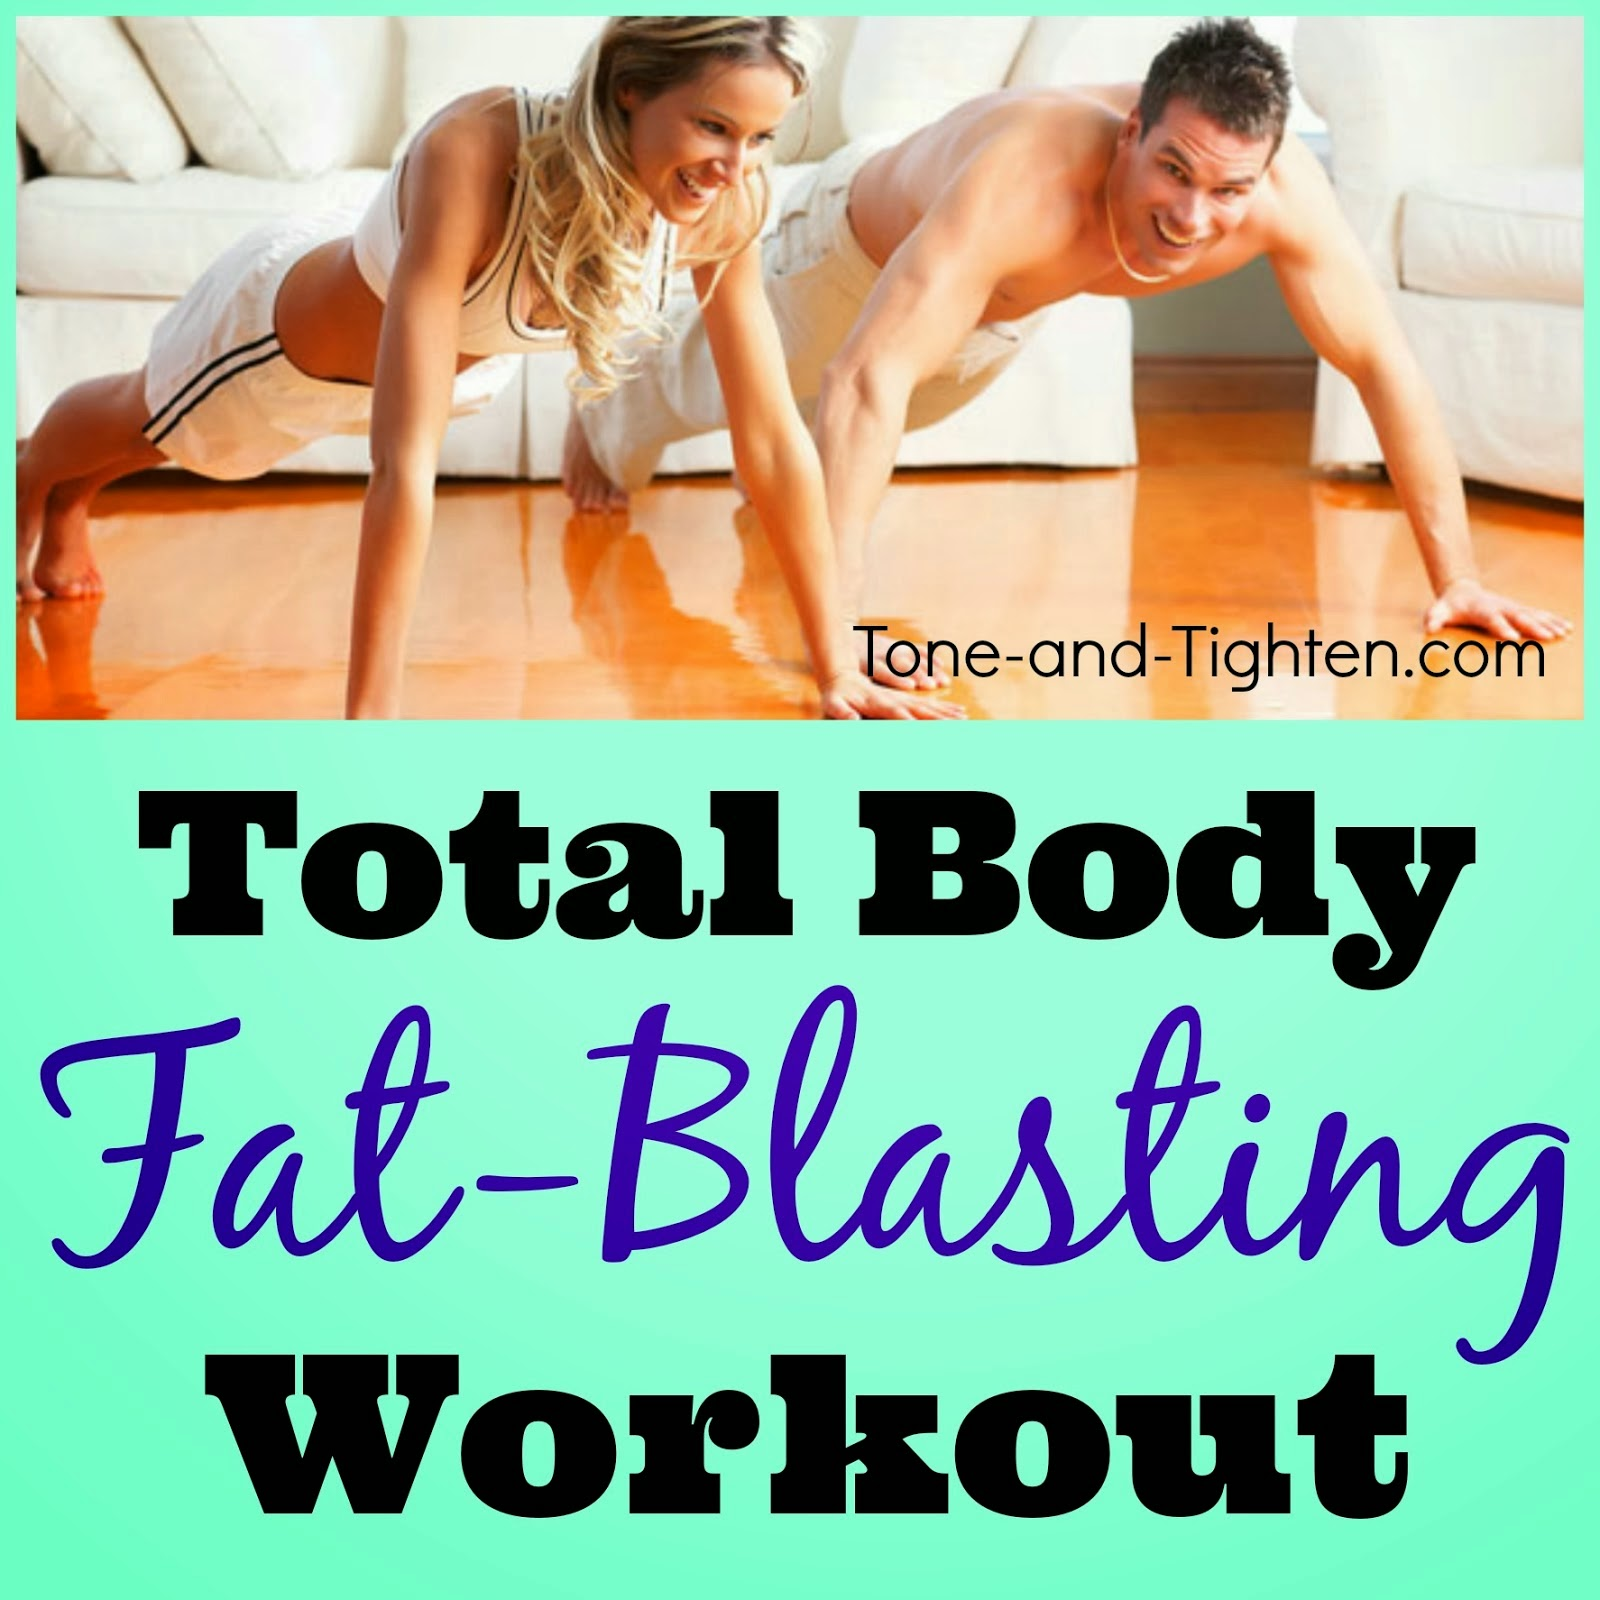 http://tone-and-tighten.com/2014/01/fat-blasting-workout-no-equipment-needed.html